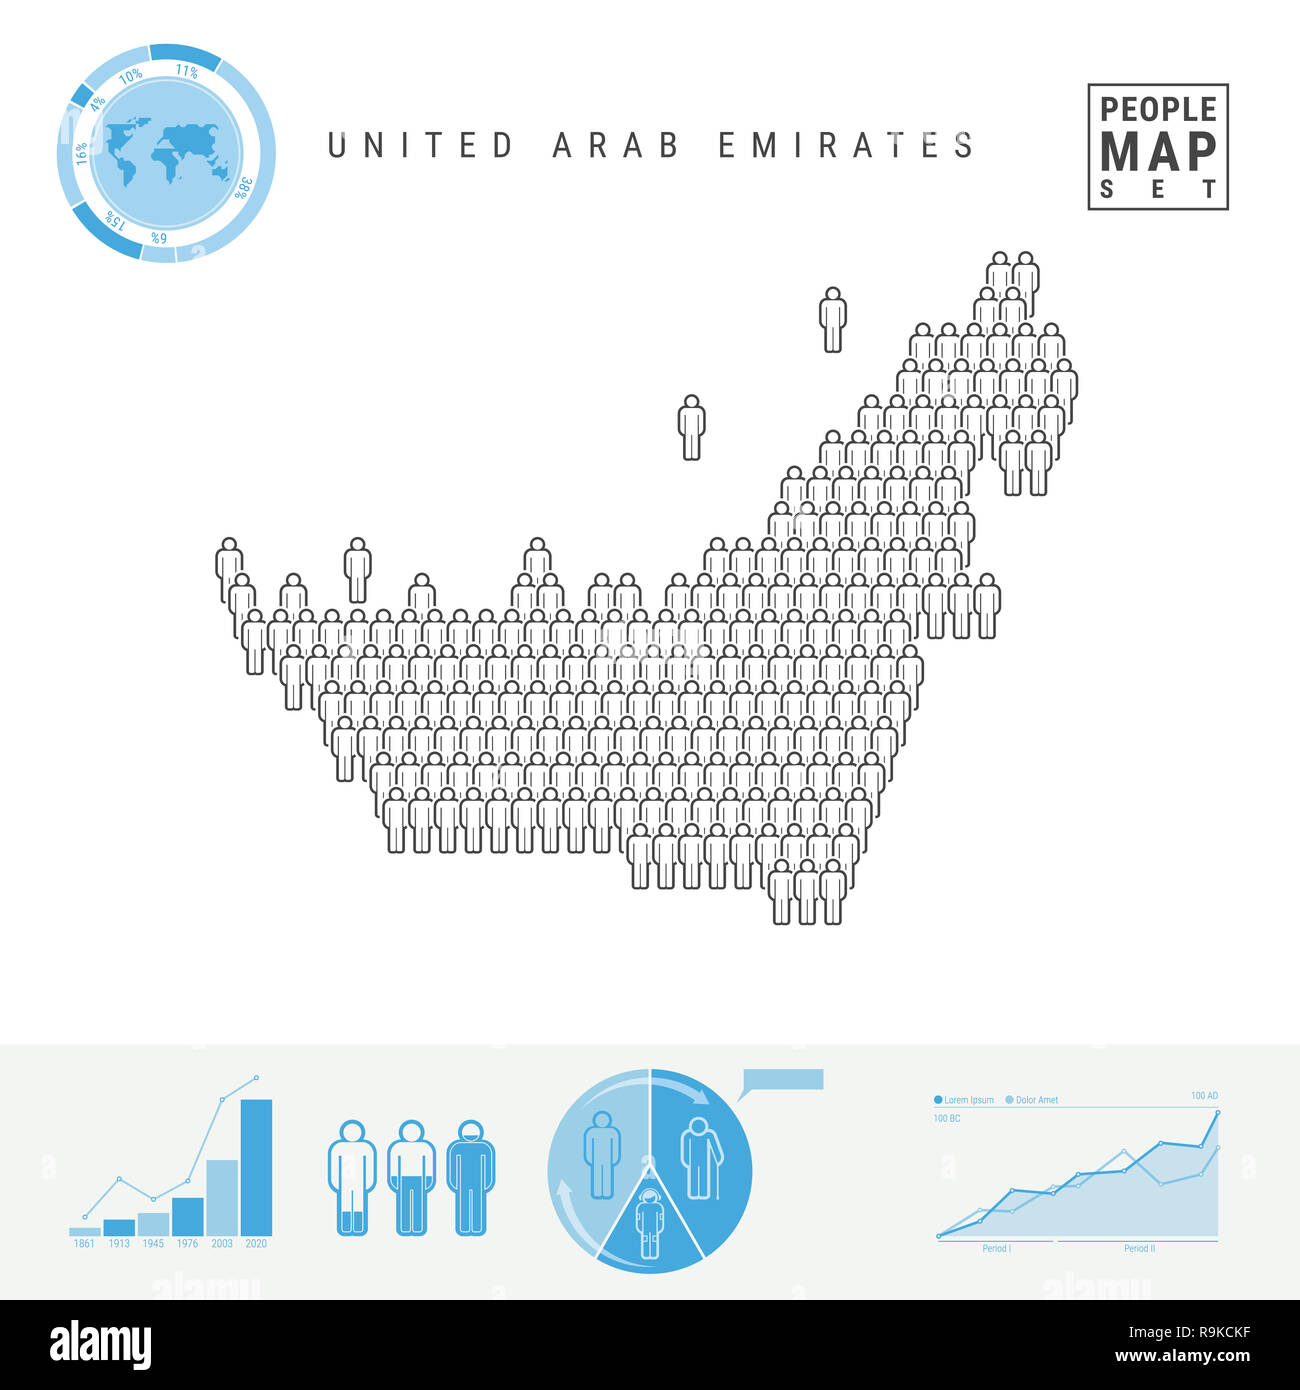 United Arab Emirates People Icon Map. People Crowd in the Shape of a Map of UAE. Stylized Silhouette of UAE. Population Growth and Aging Infographic E - Stock Image